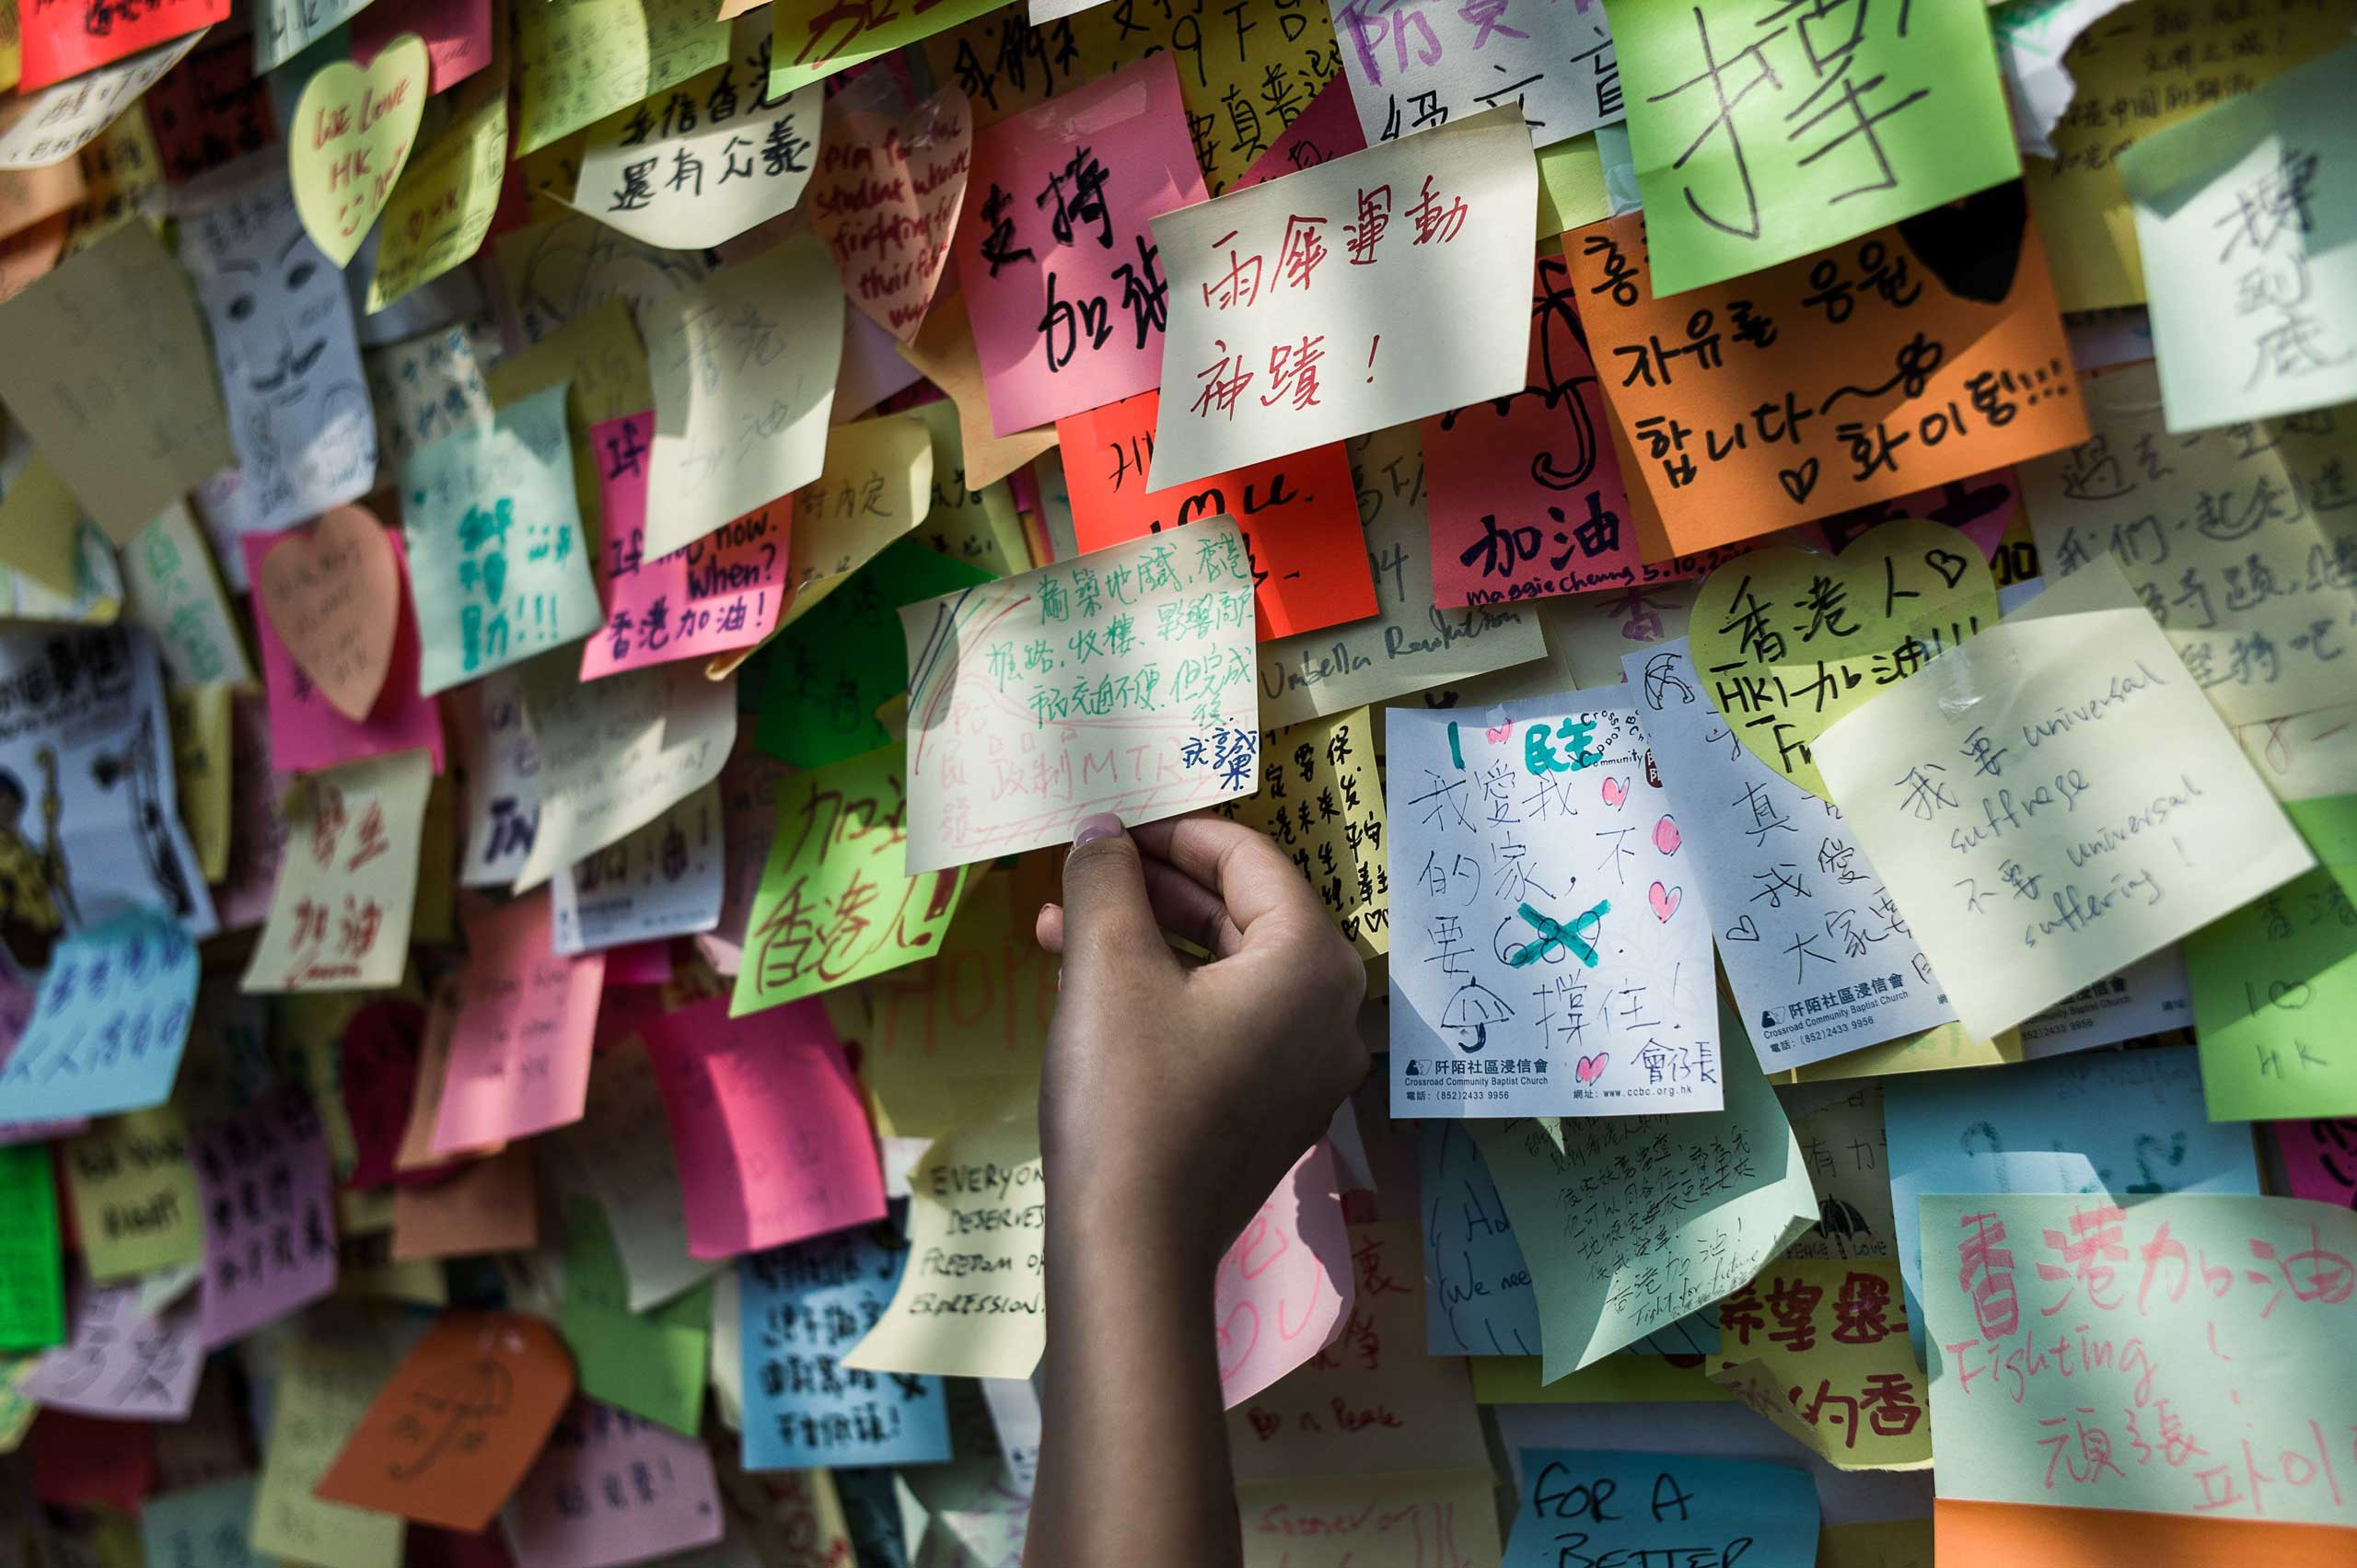 Oct. 7, 2014. A wall of post-it messages of support is seen near an occupied area in Hong Kong. Small knots of pro-democracy demonstrators remained on Hong Kong's streets after protest leaders agreed to talks with the government and dwindling demonstrator numbers dropped further.